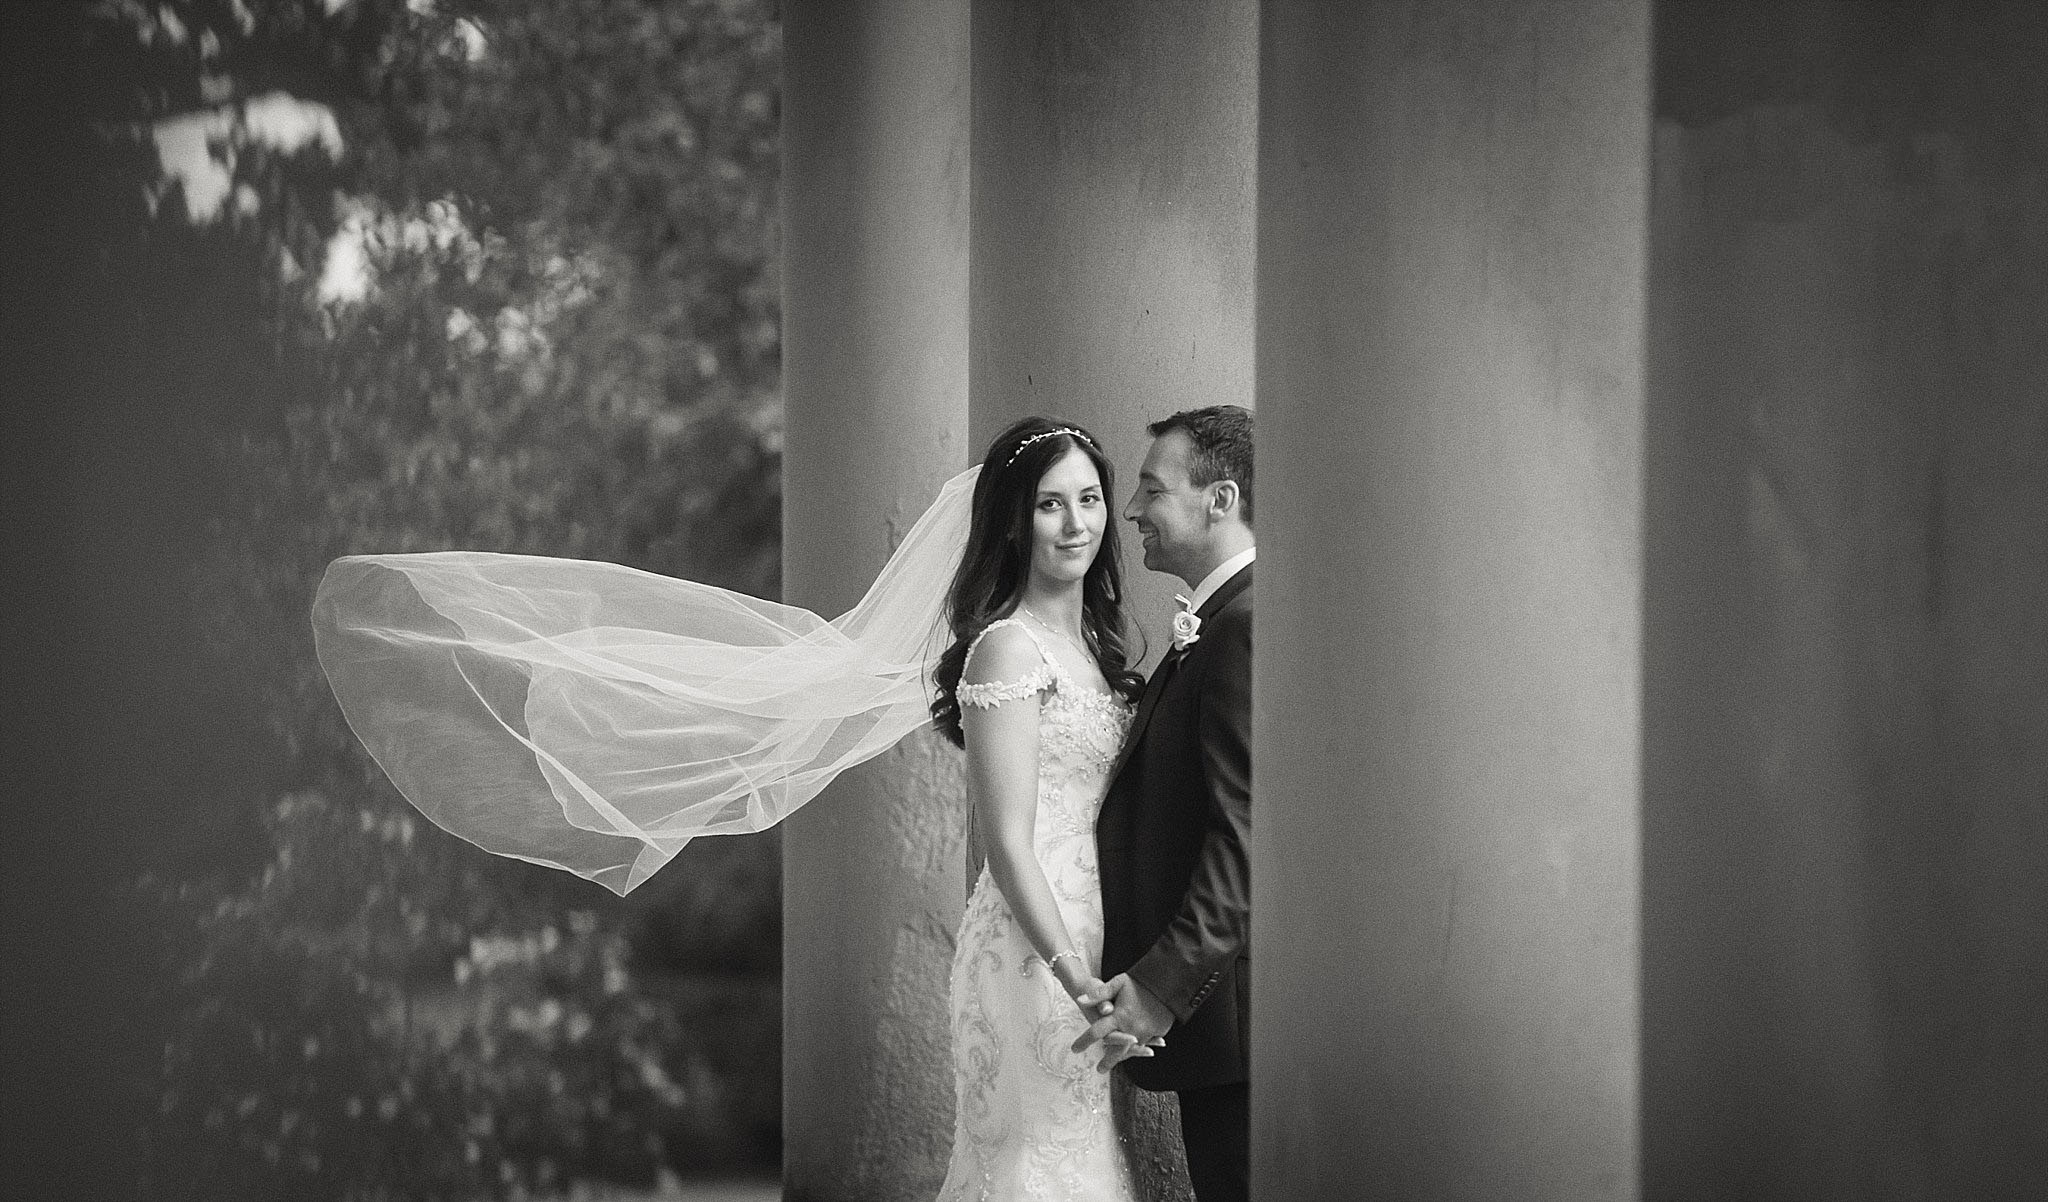 rise hall wedding photograph.jpg